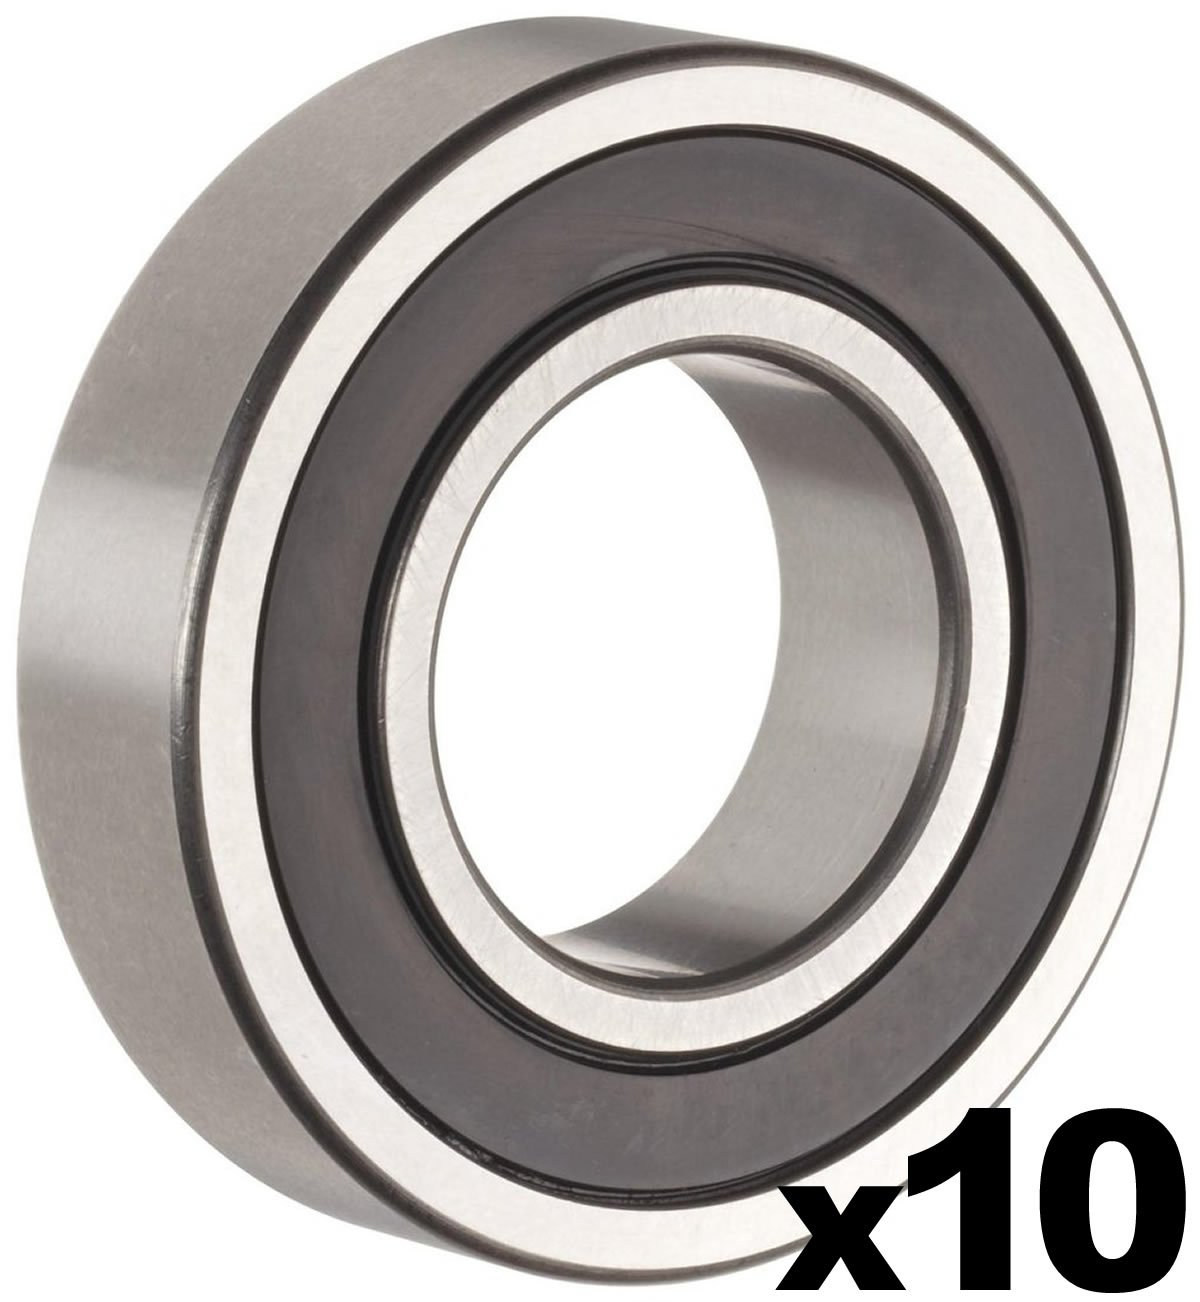 6203-2RS Sealed Bearing - 17x40x12 - Lubricated - Chrome Steel (10 PCS) by PGN (Image #1)